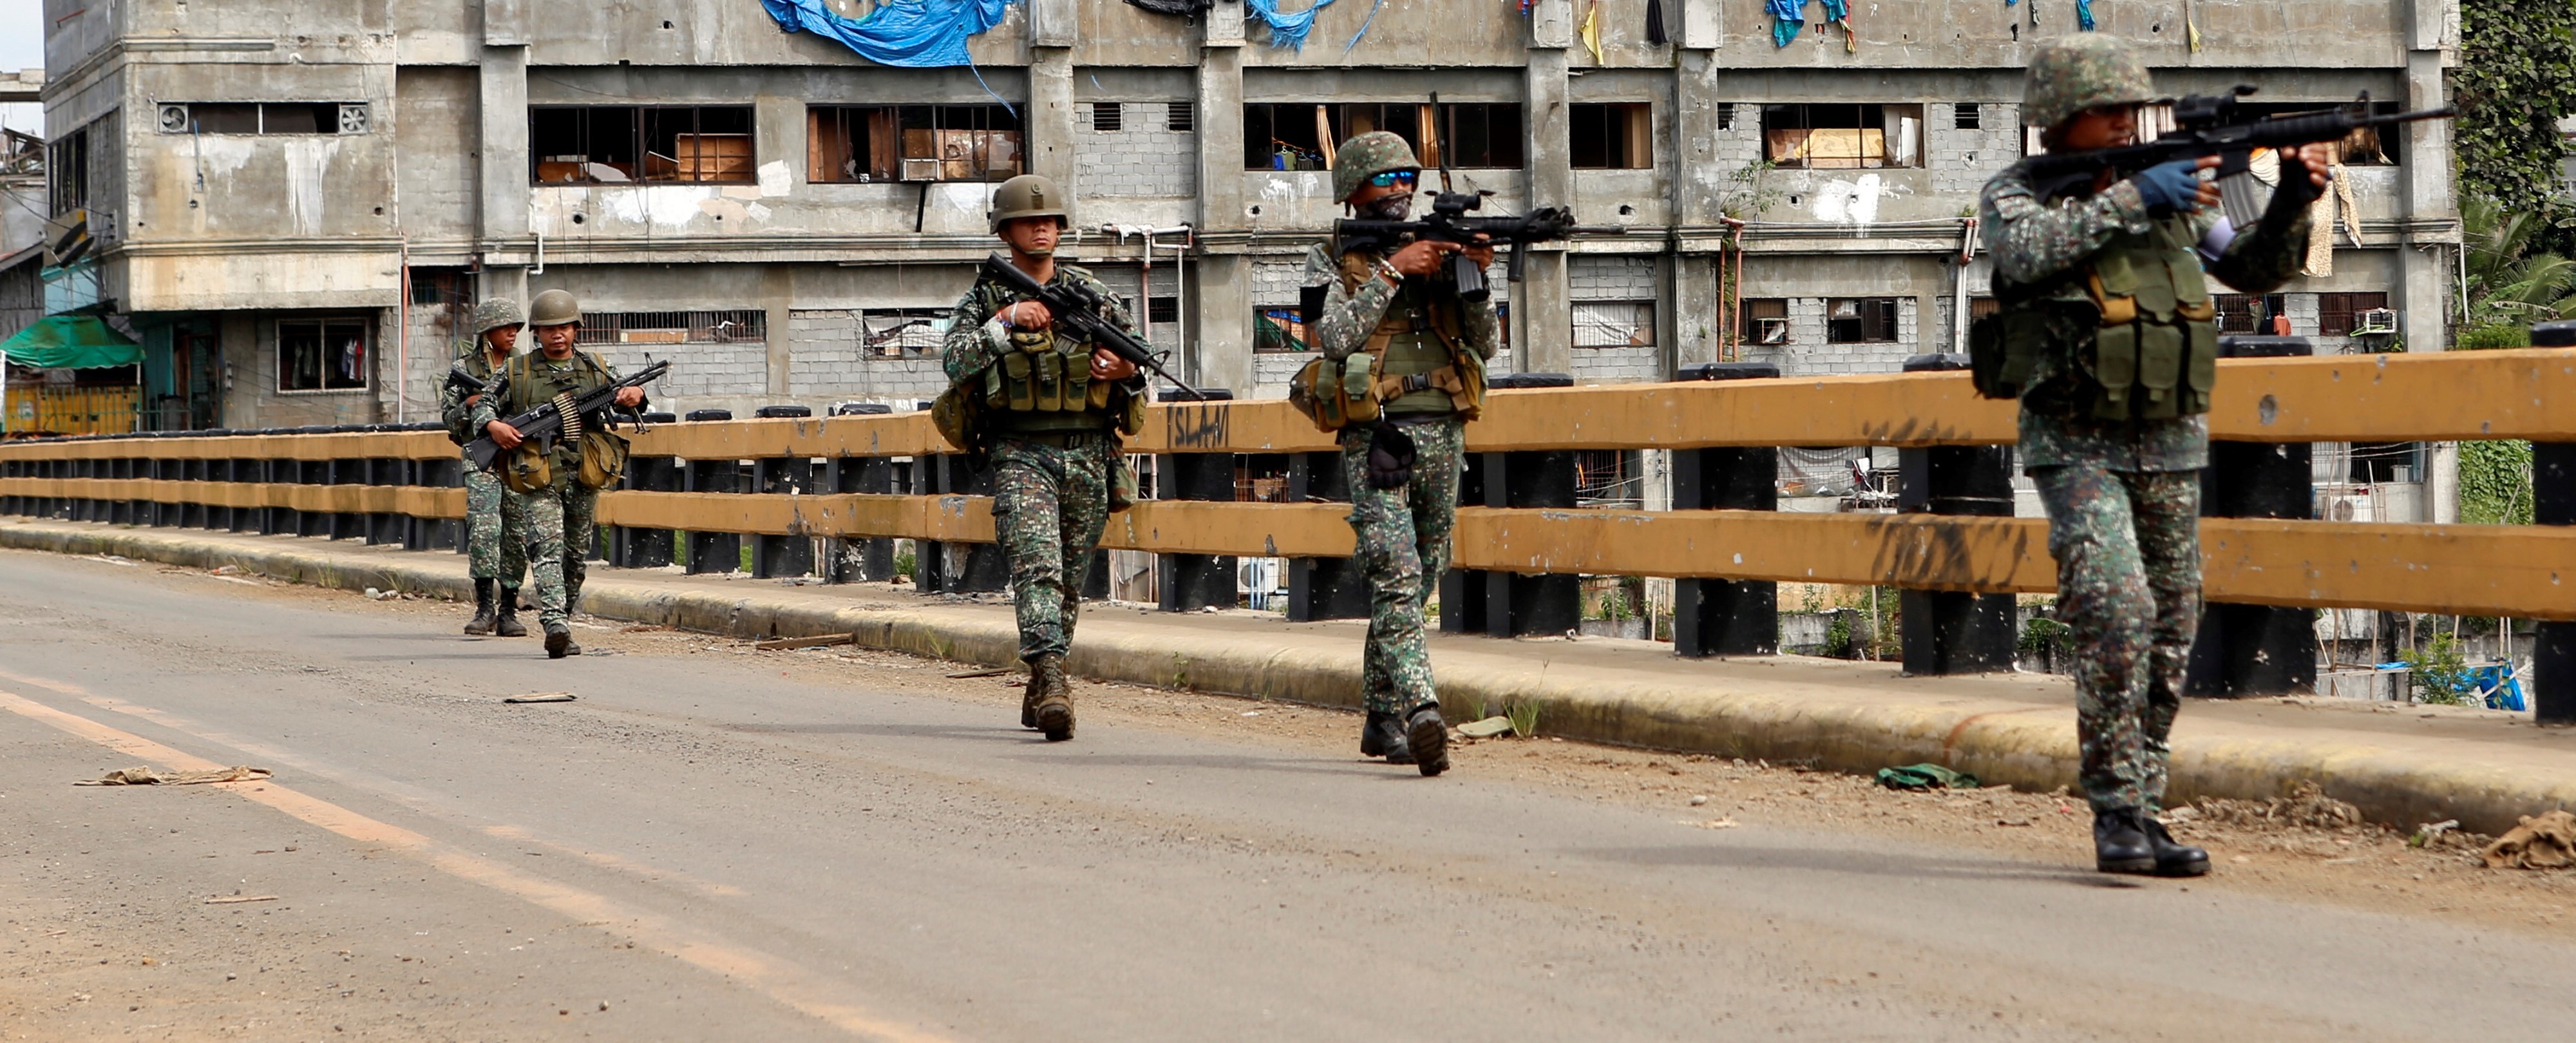 Philippine Marines 1st Brigade conduct clearing operations in Marawi. (Getty/Anadolu)